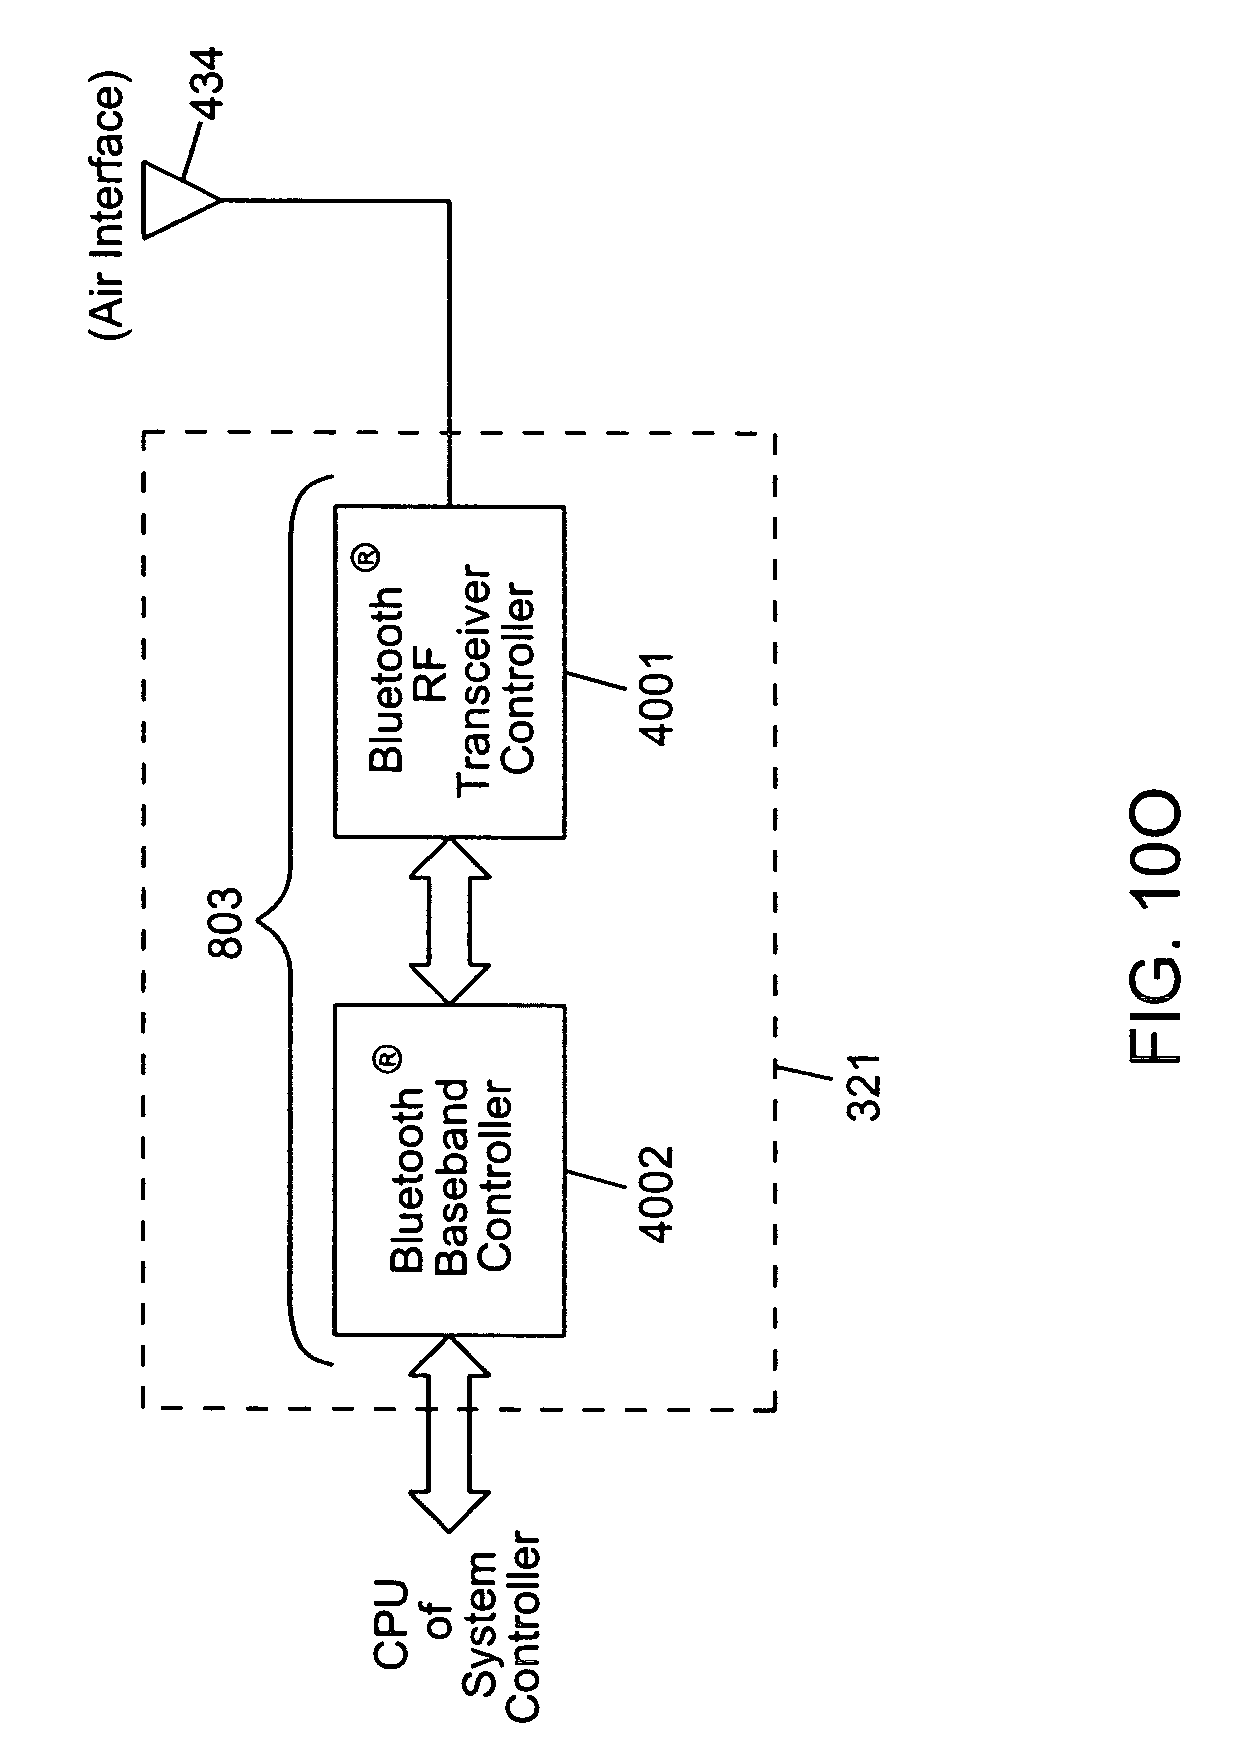 Patent Us 7464878 B2 Electric Fence Charger Likewise Circuit Diagram On Images